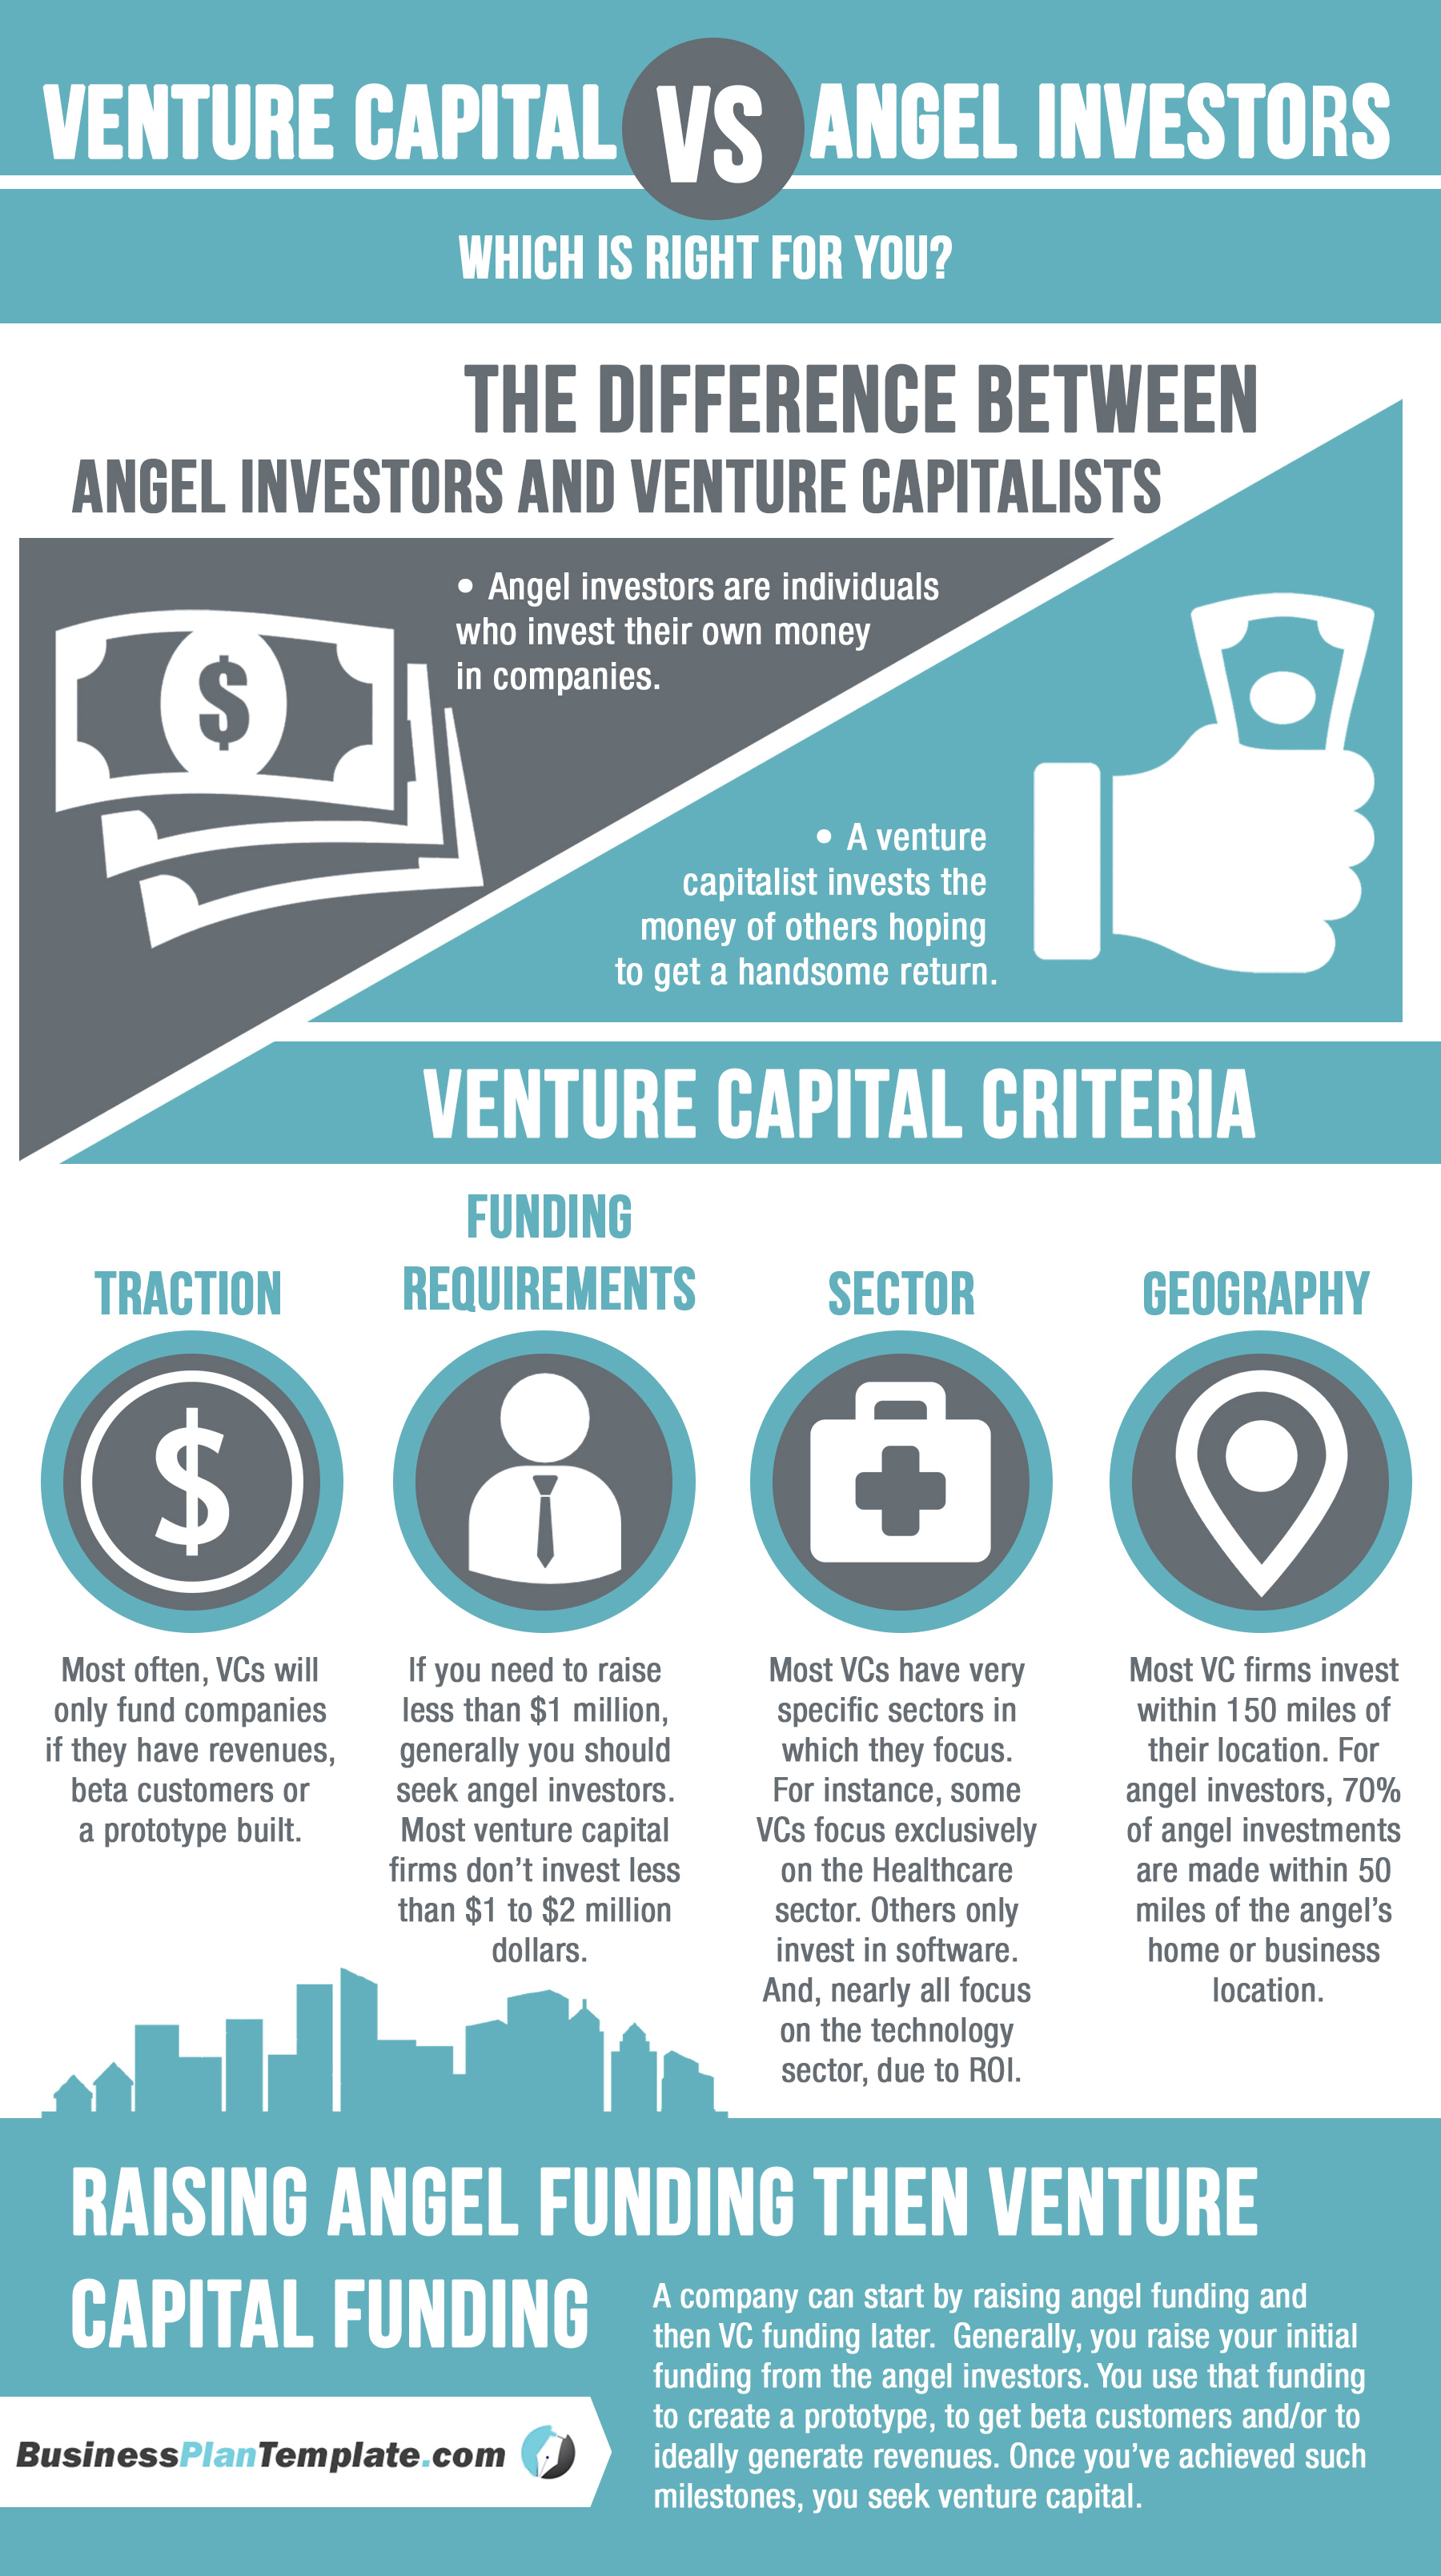 Venture-Capital-vs-Angel-Investors-Whichis-Right-for-You-Infographic